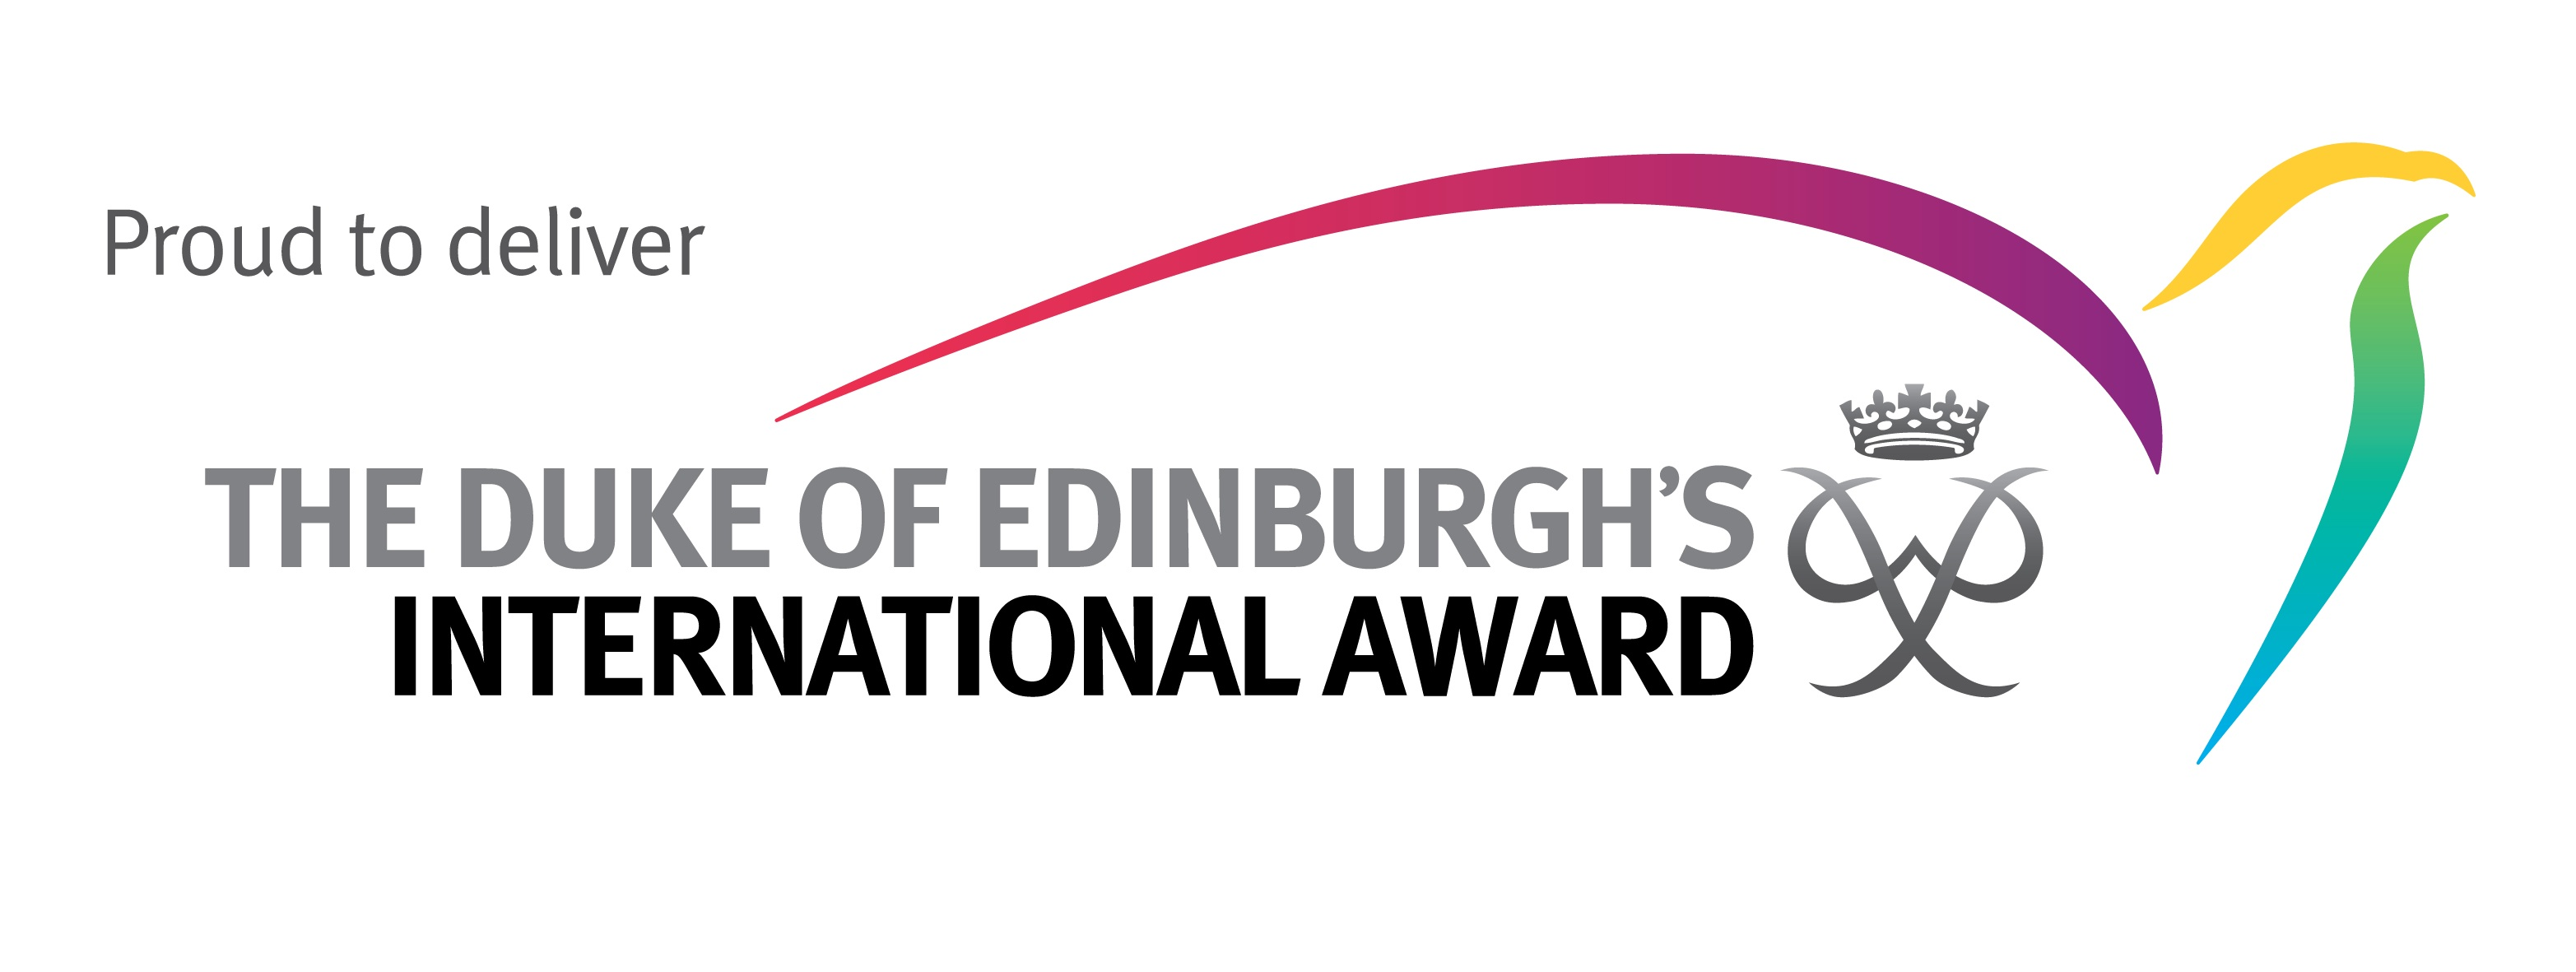 international-award_logo